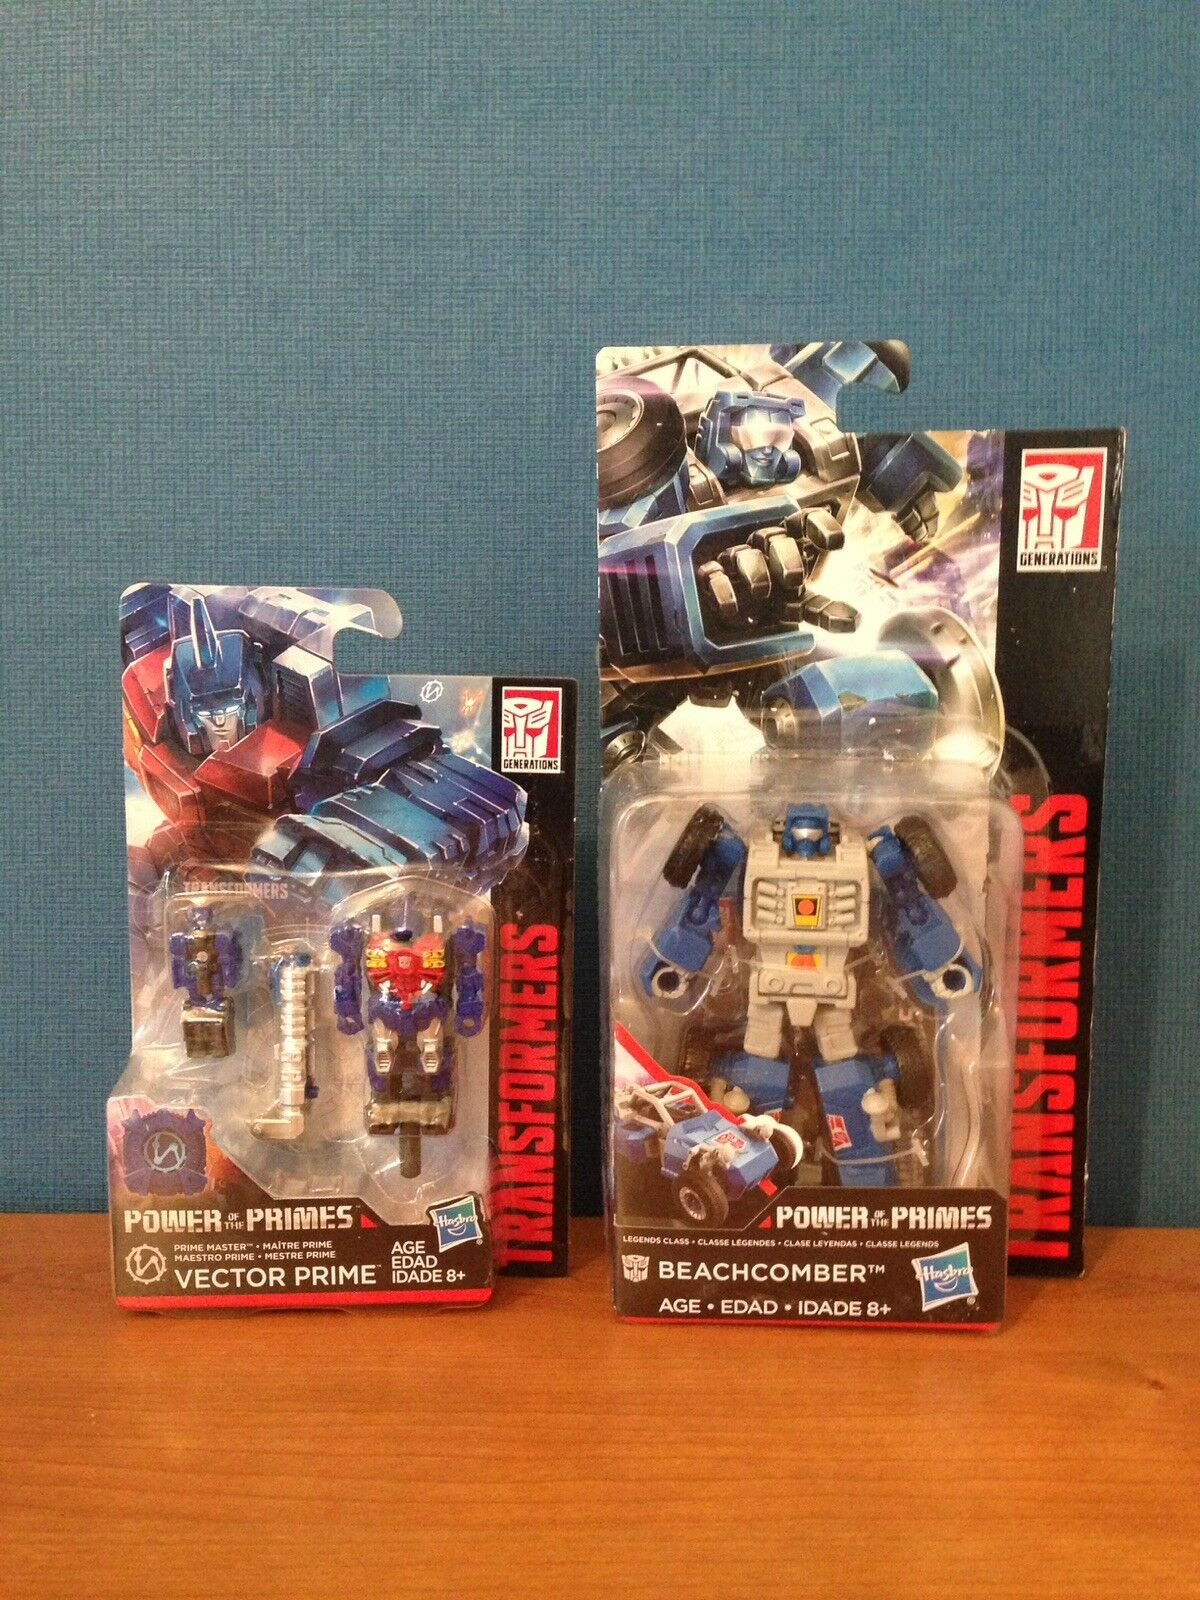 Transformers Hasbro Generations Power Of The Primes Beachcomber Legend Legend Legend MIB 9a2ce7